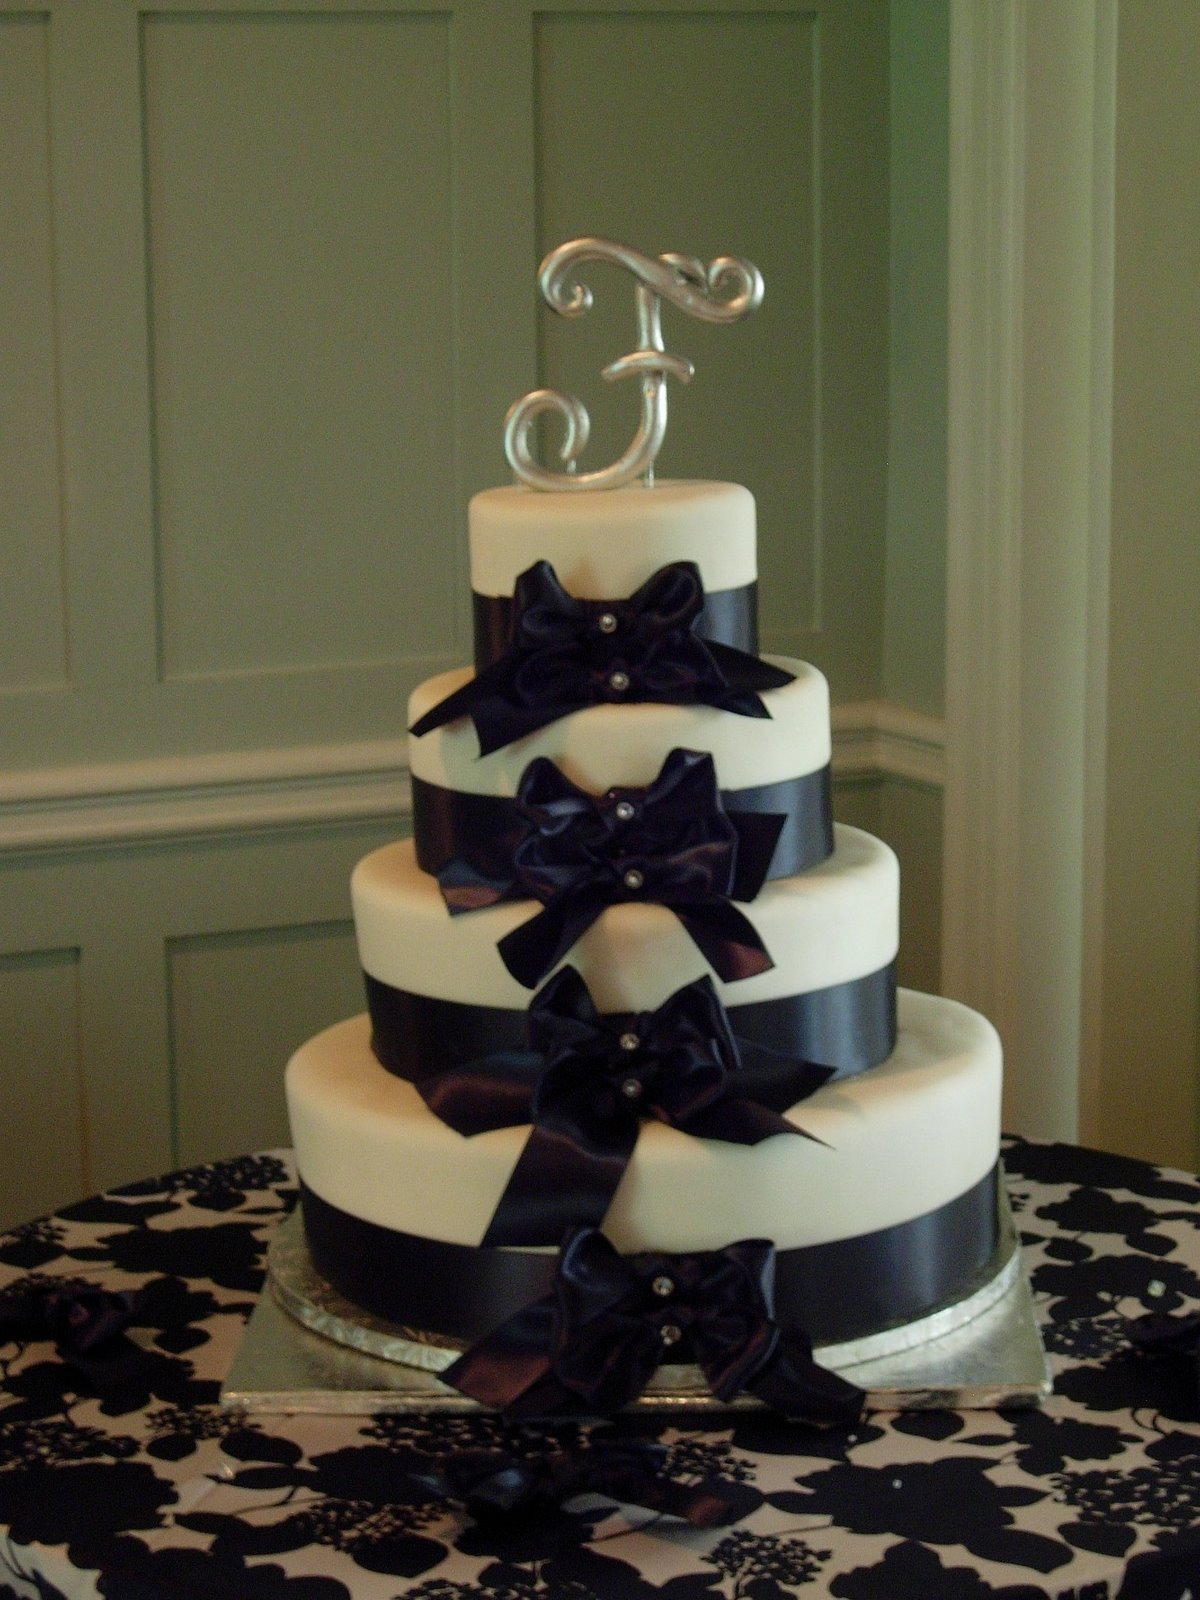 PS A Photo Of Her Wedding Cake From New Bedford Country Club Is Below